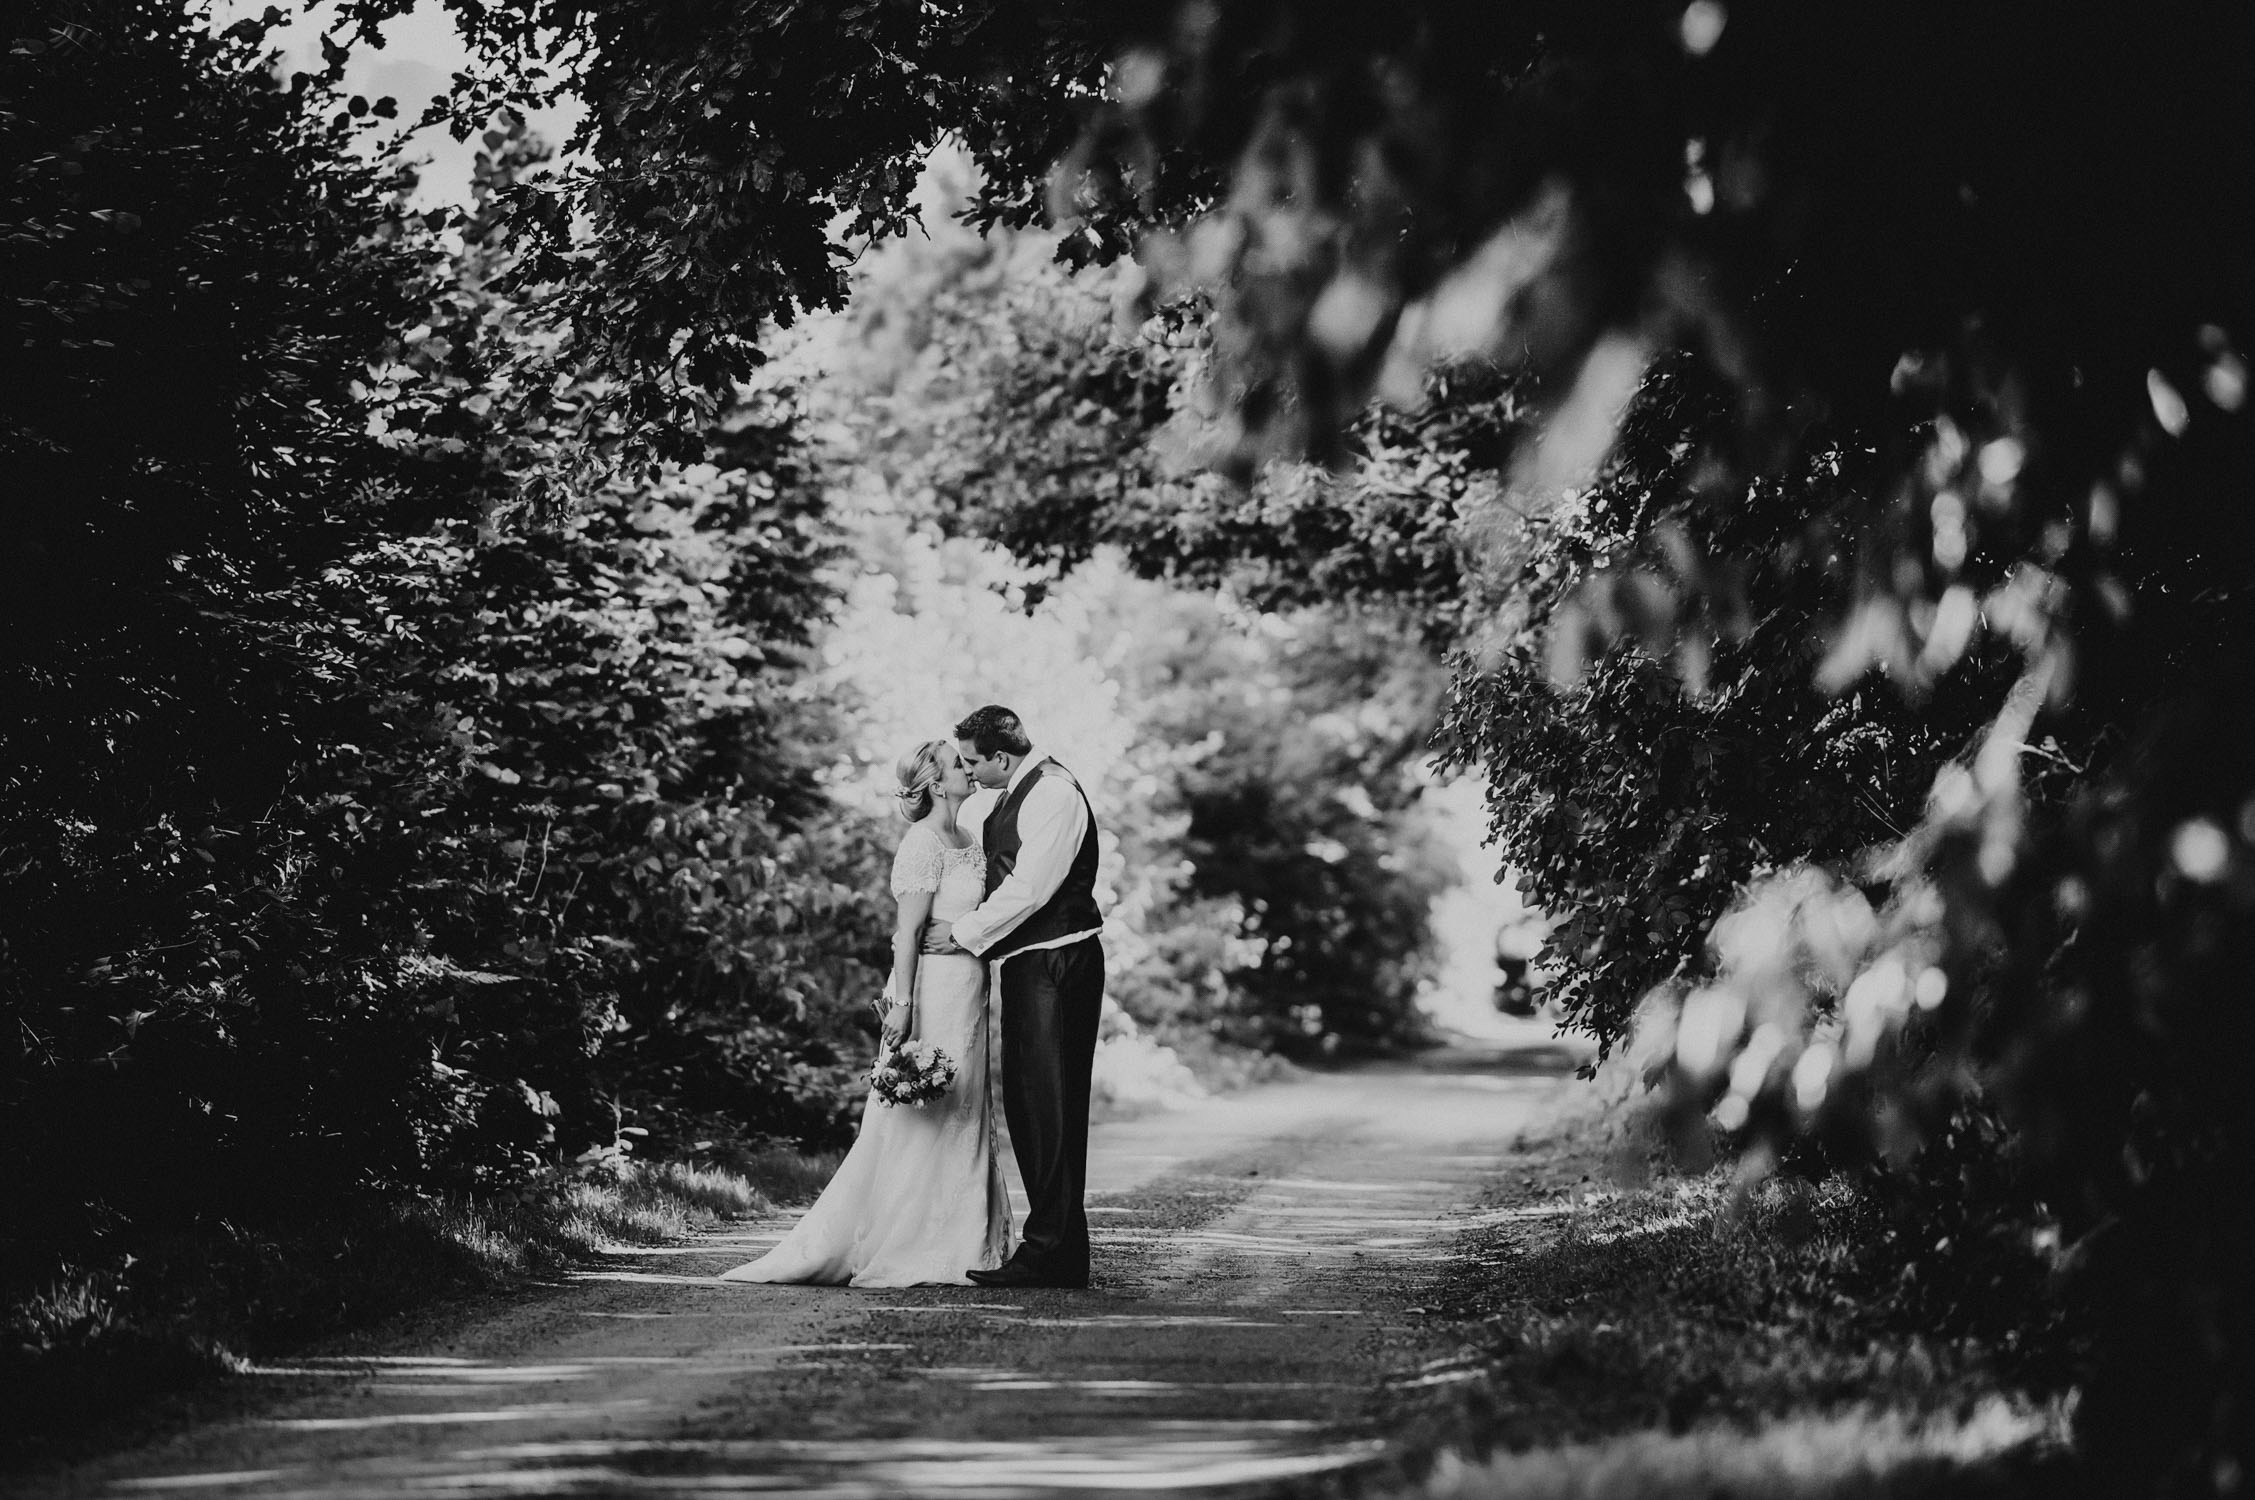 wedding in somerset, bride and groom in lane lined with trees, Documentary somerset wedding photographer